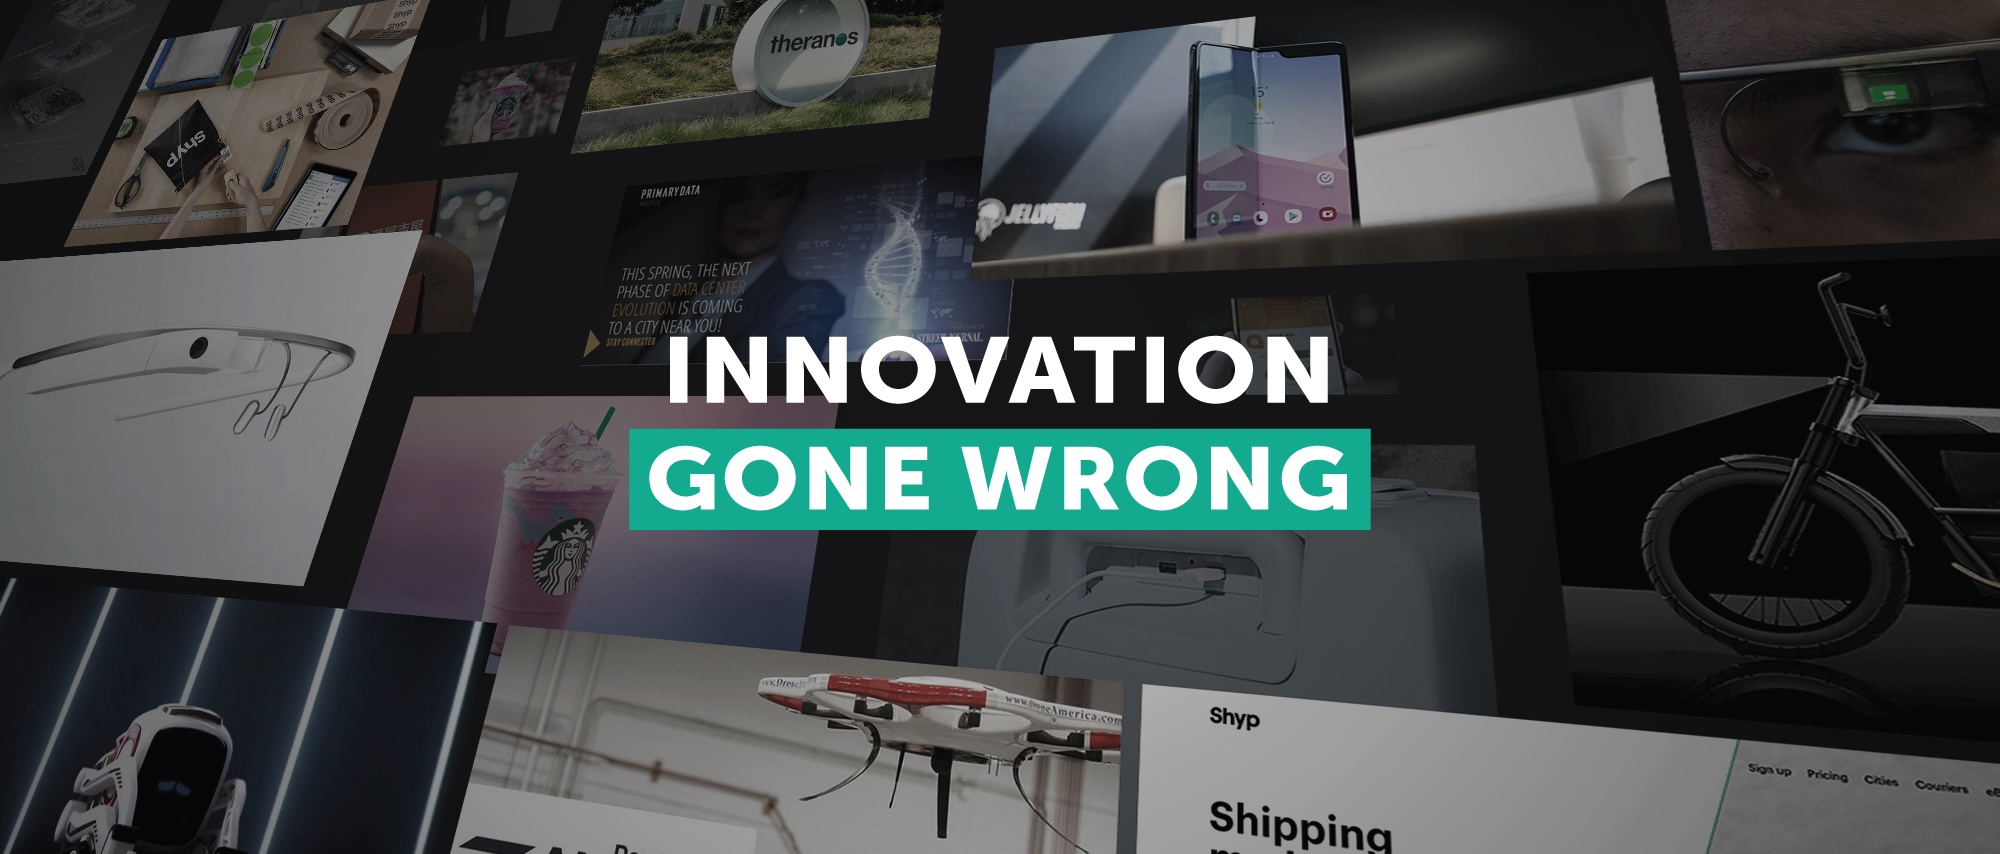 13 Failed Innovations and How to Avoid Them